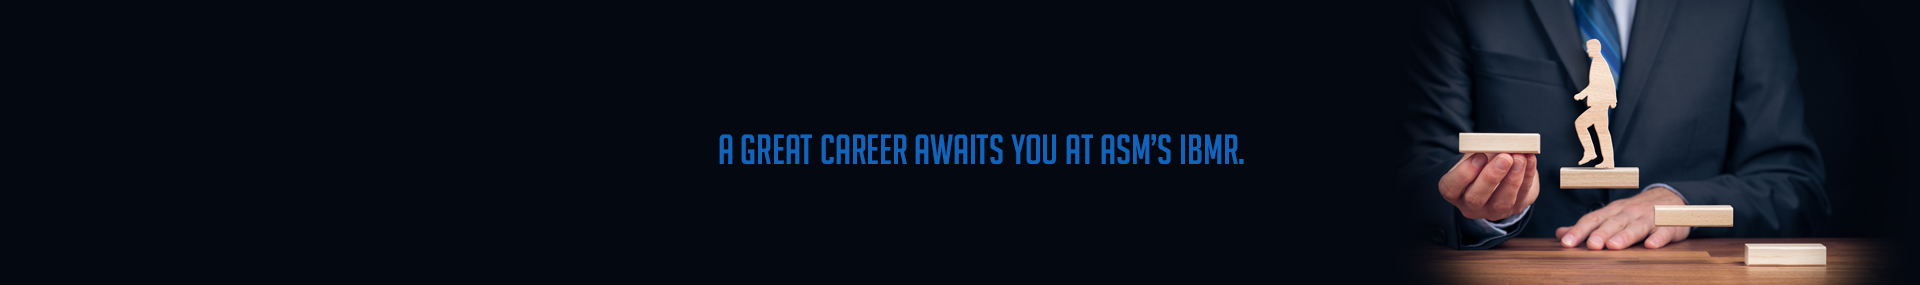 Career Awaits You at ASM's IBMR